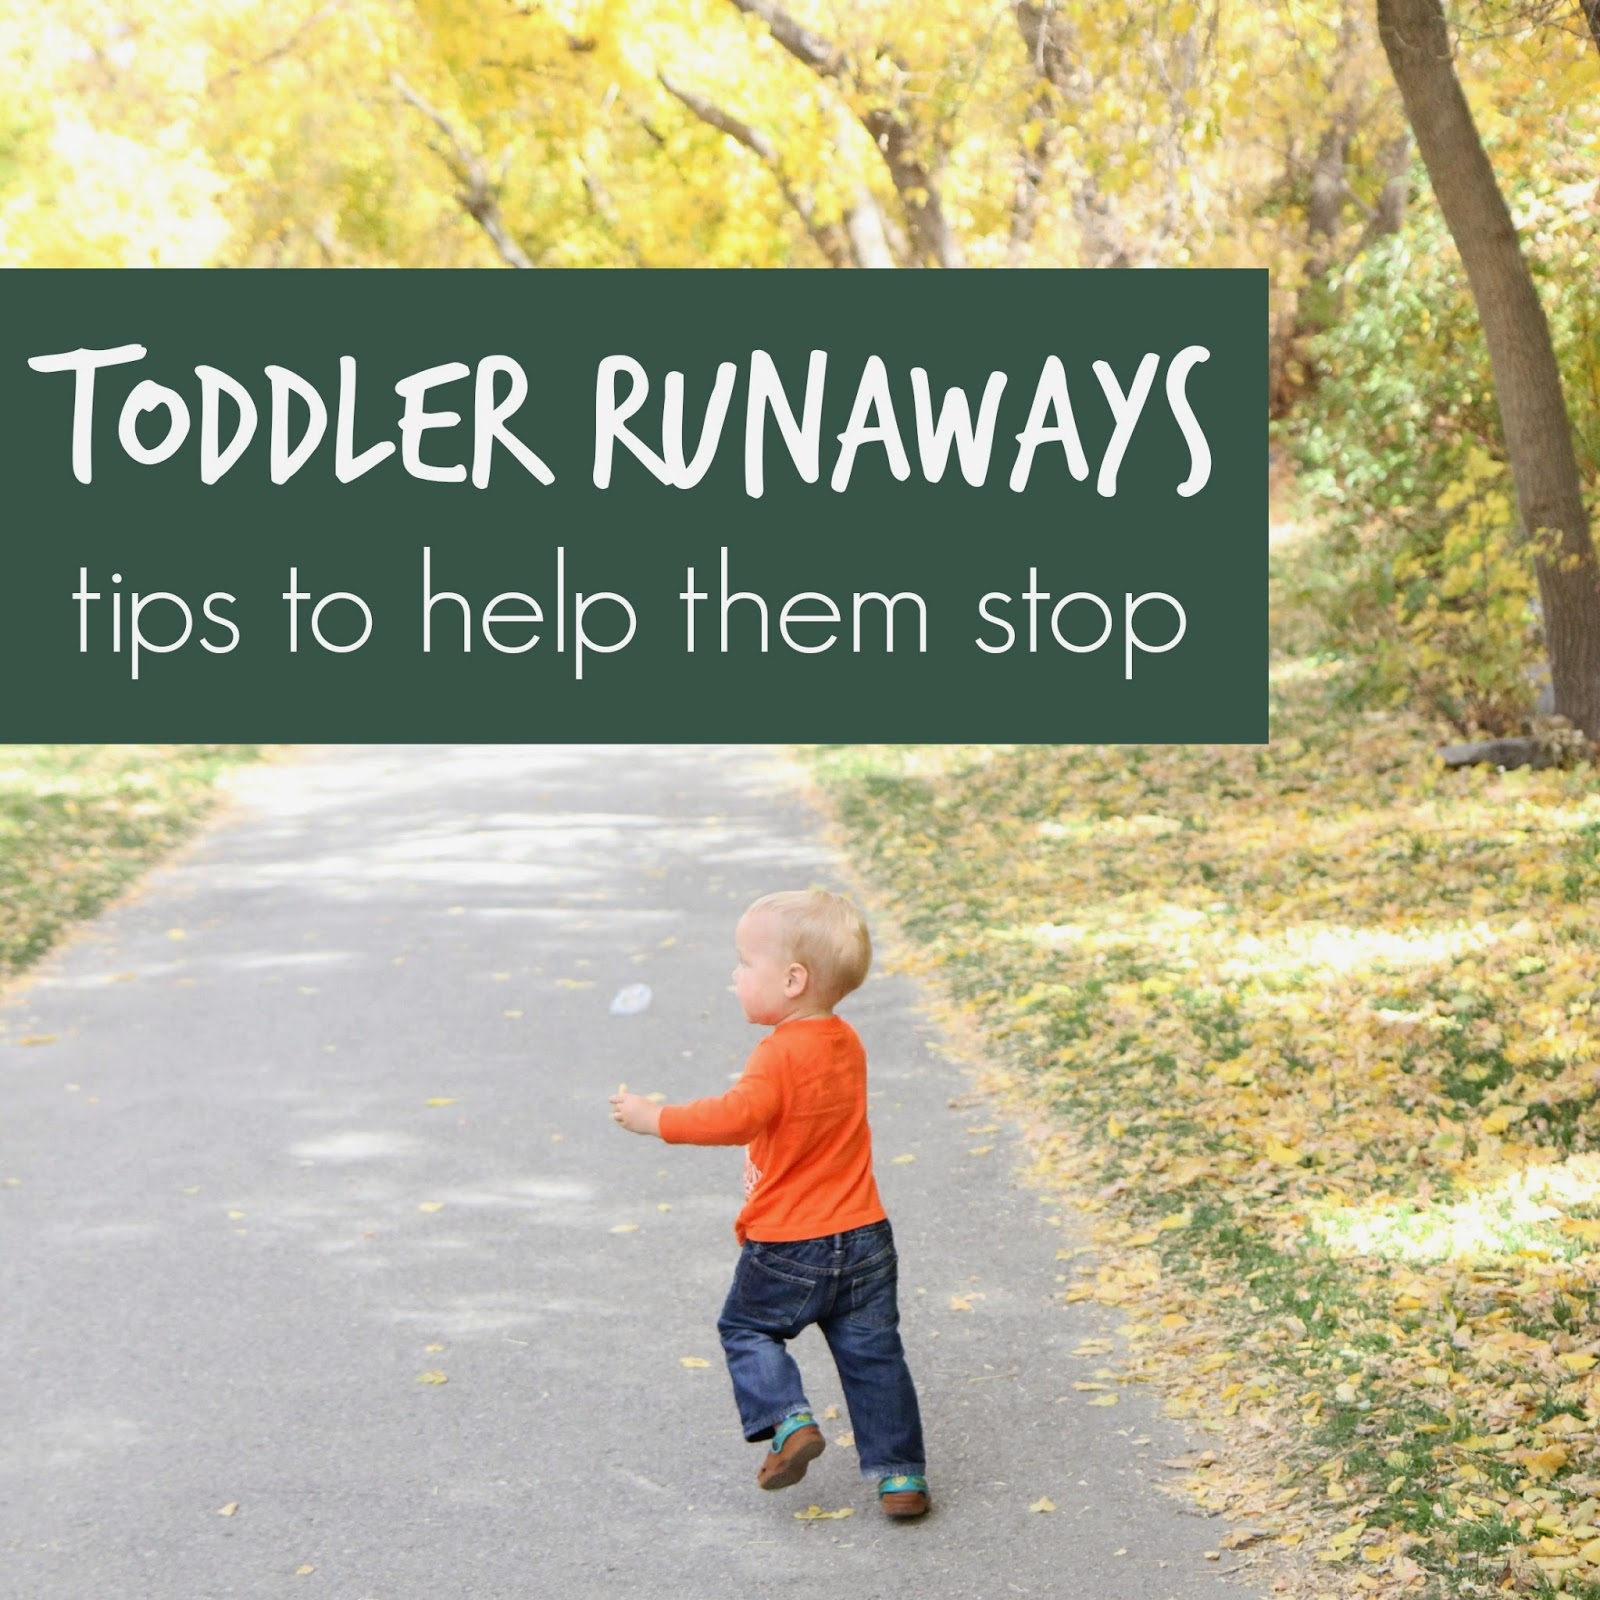 Over In Our Toddler Approved Positive Parenting Fb Group We've Been Talking  About Toddlers